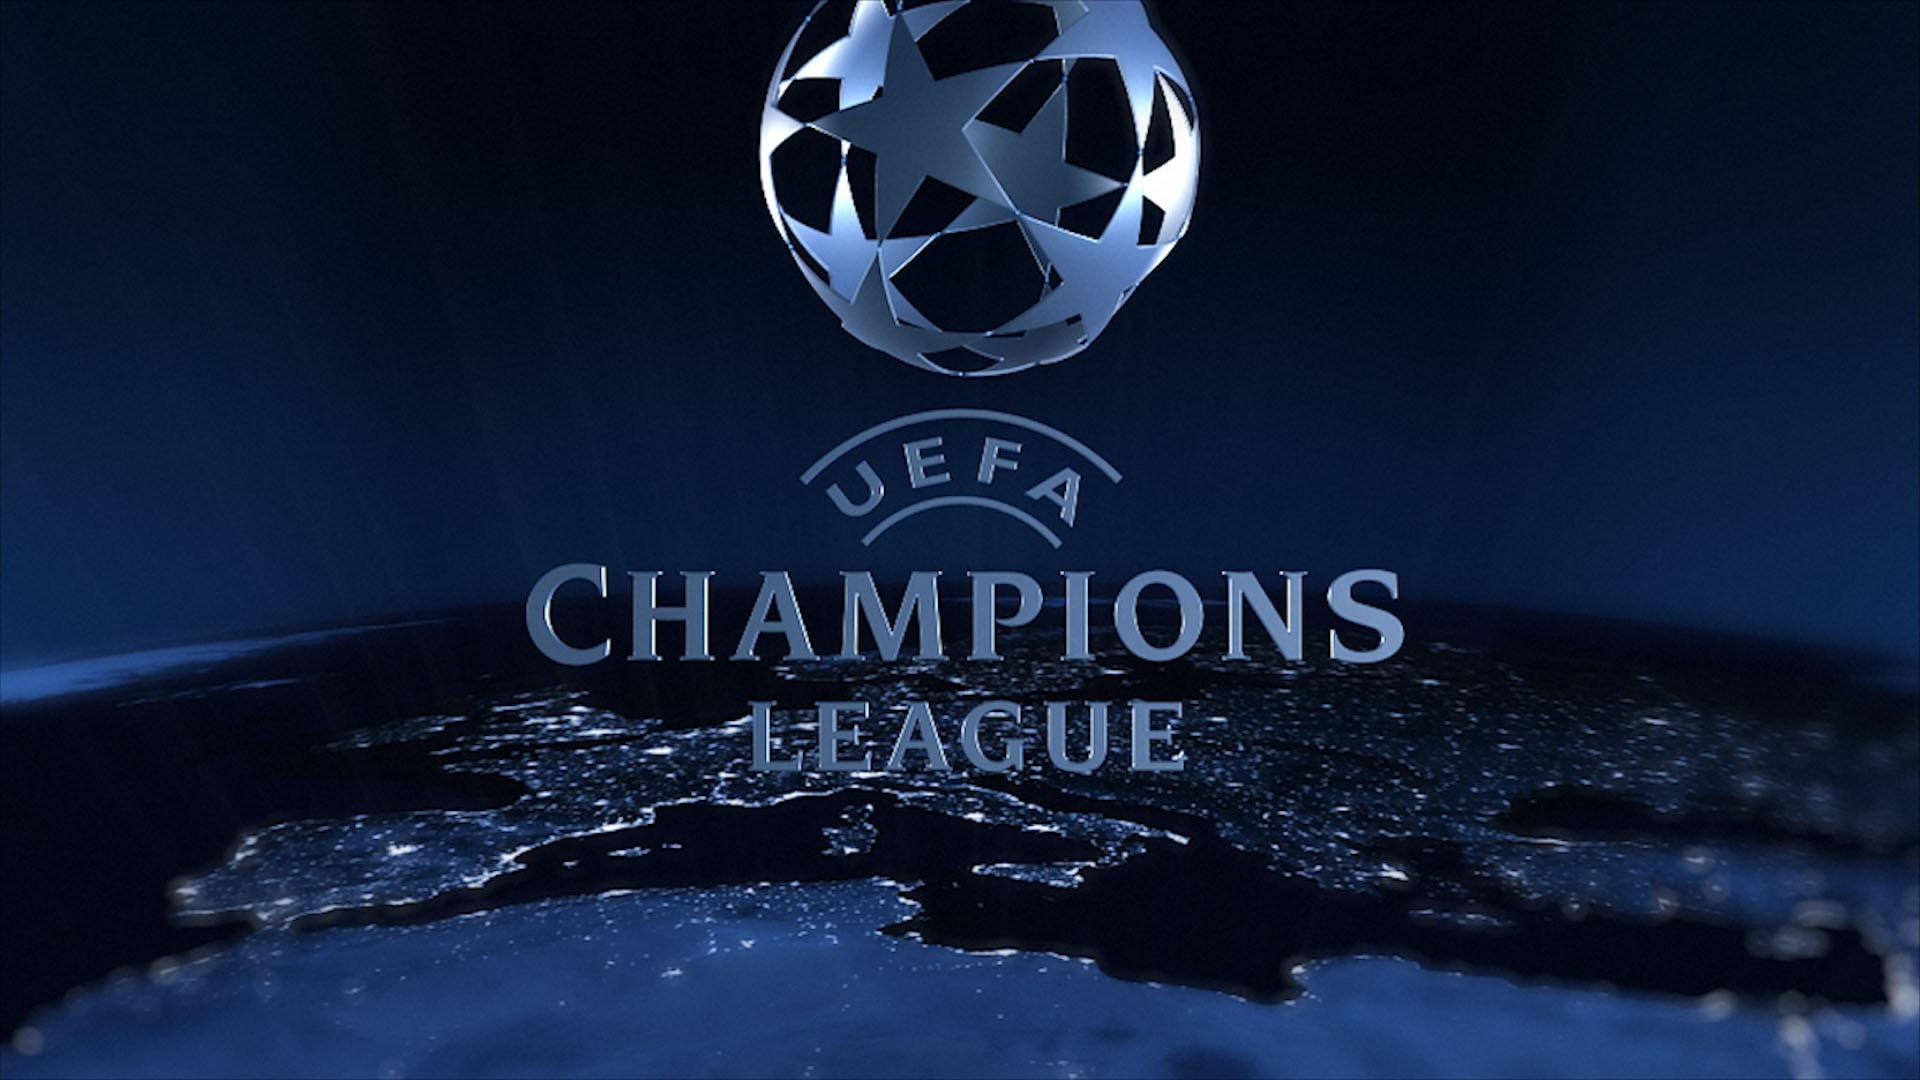 Champions League Wallpapers ·①